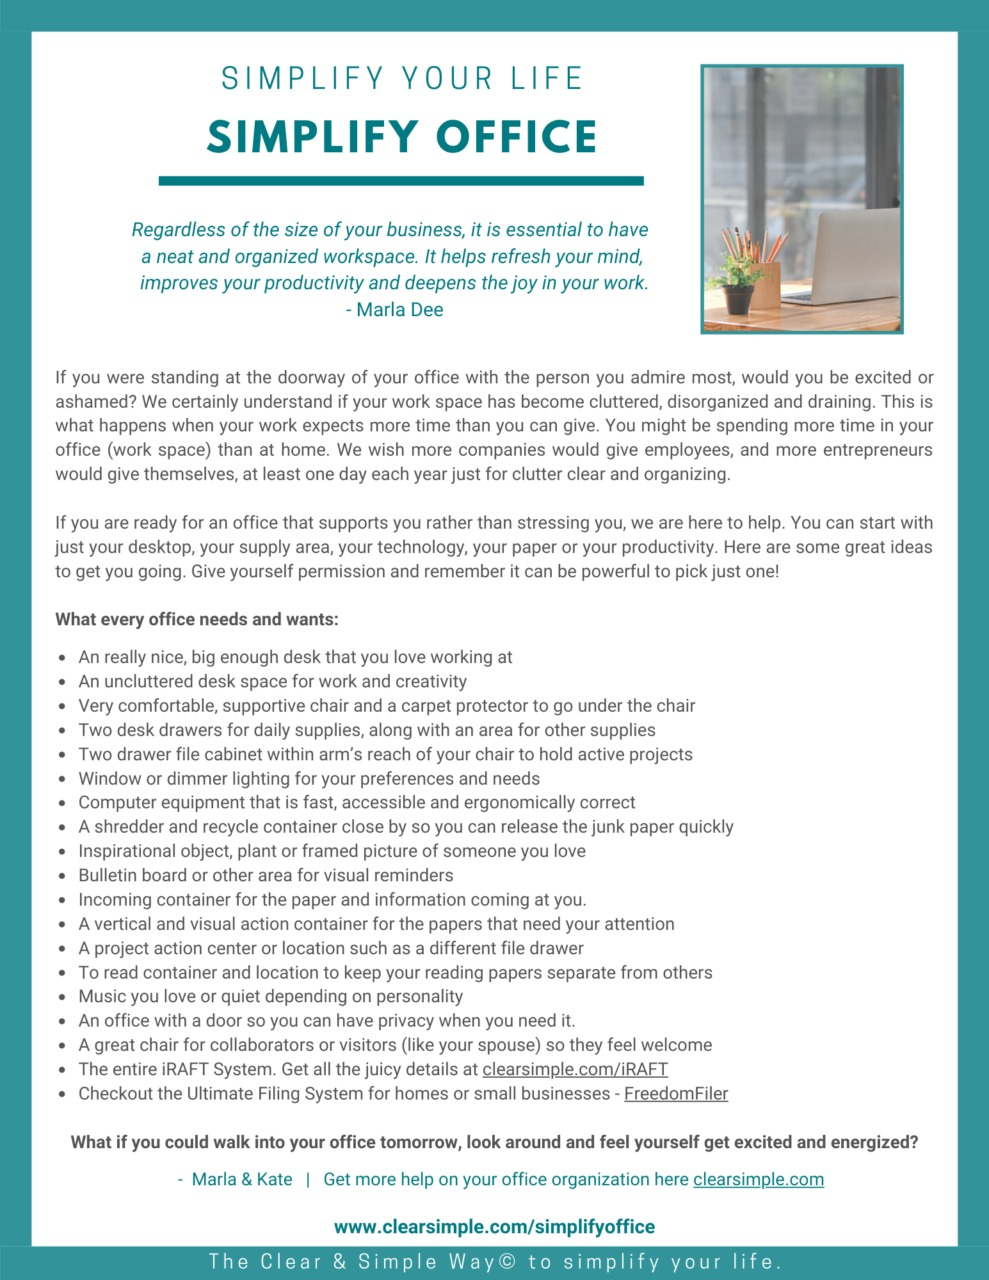 Clear & Simple, Simplify Your Life, Simplify Your Office, Marla Dee, Kate Fehr